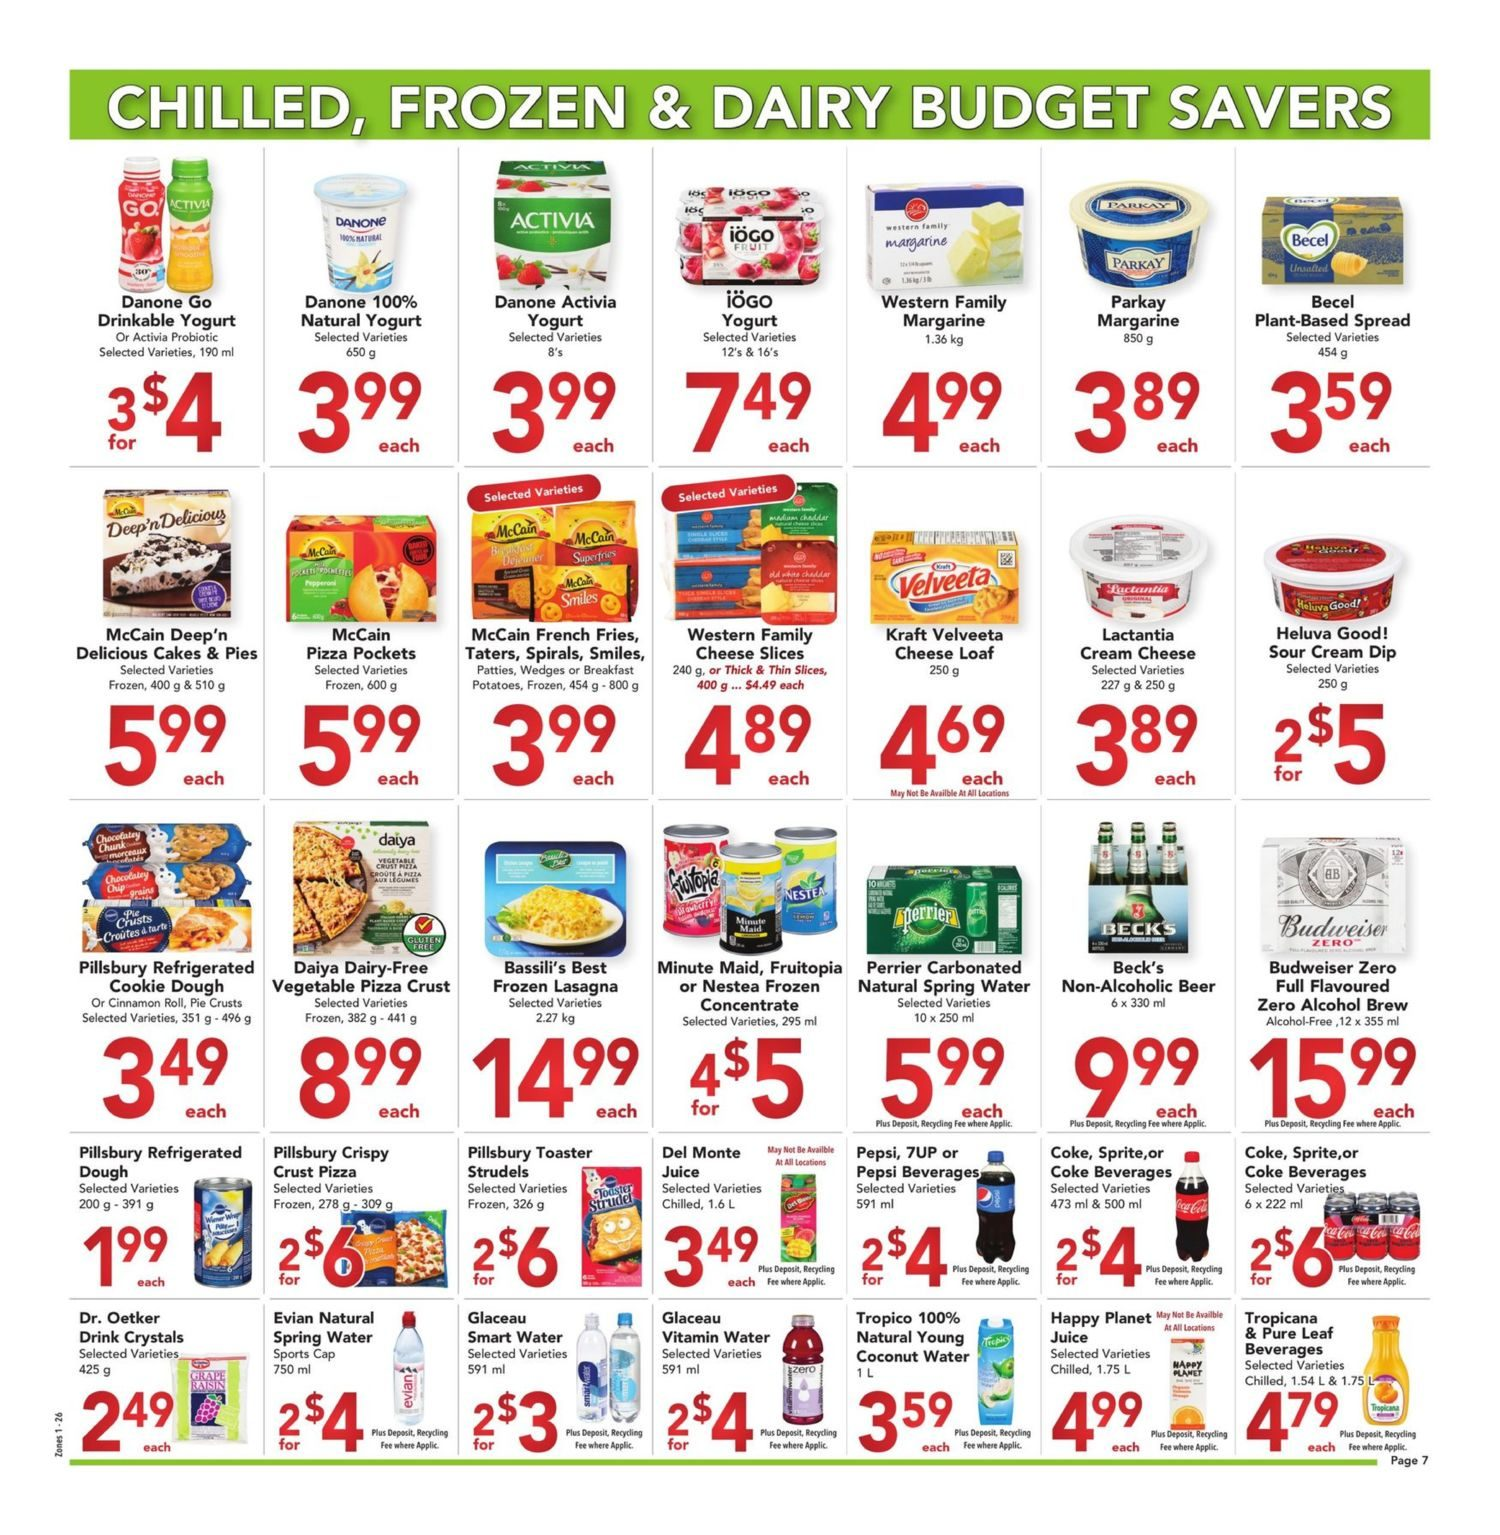 Buy-Low Foods - Budget Savers - Page 7